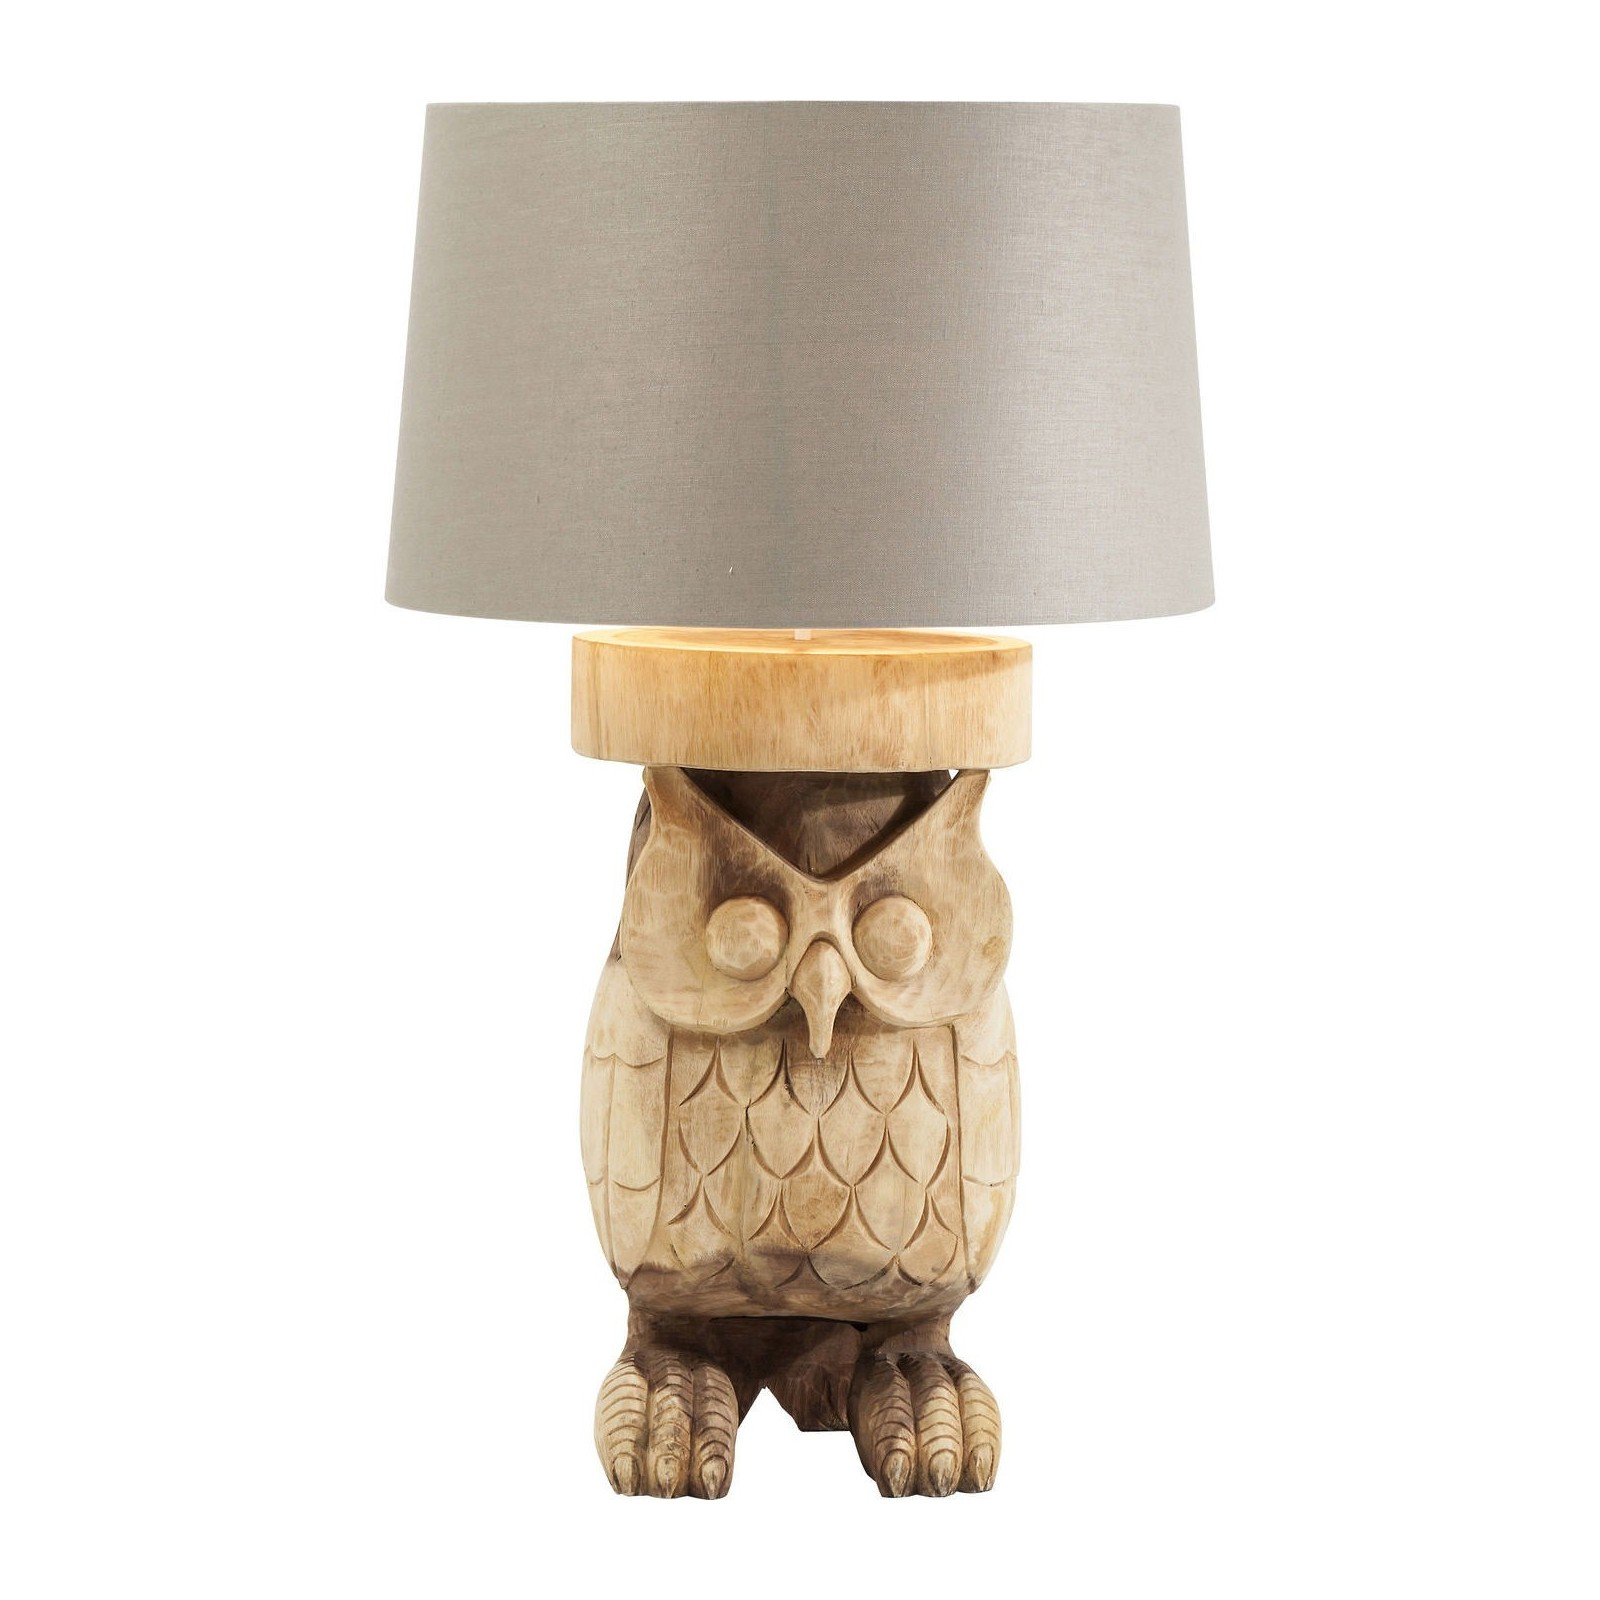 lampe de table hibou taill dans du bois nature kare design. Black Bedroom Furniture Sets. Home Design Ideas